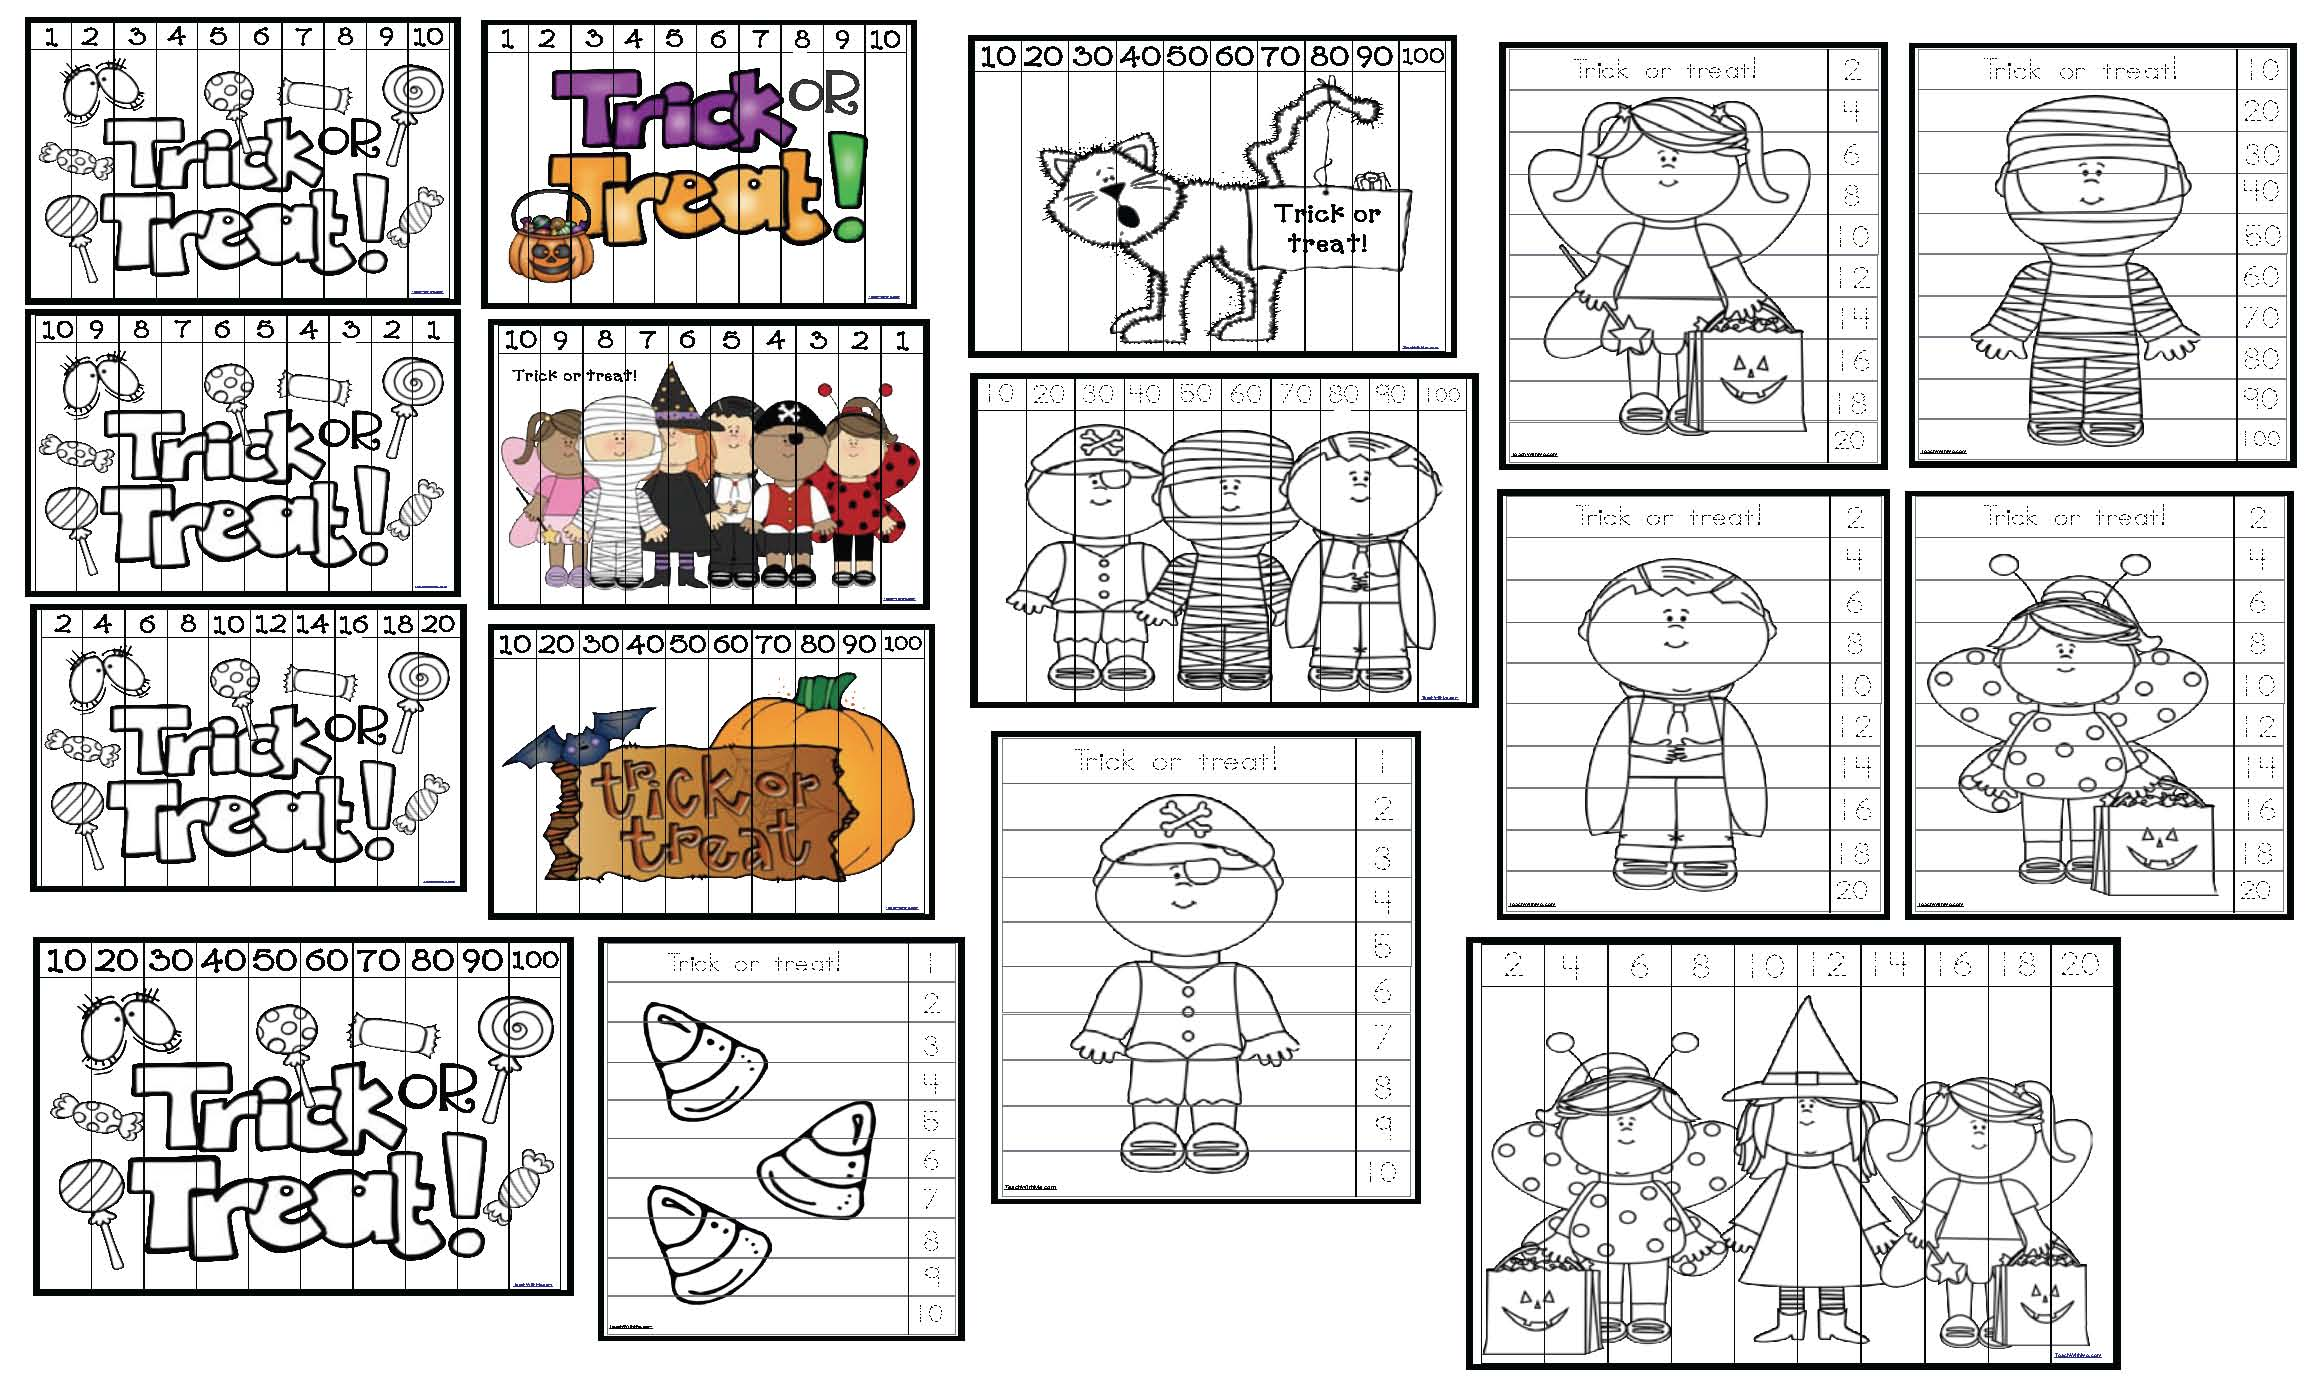 hallloween games, halloween crafts, halloween activities, halloween worksheets, halloween writing prompts, halloween games, shape activities, candy bones activities, candy bones graphing, I spy worksheets